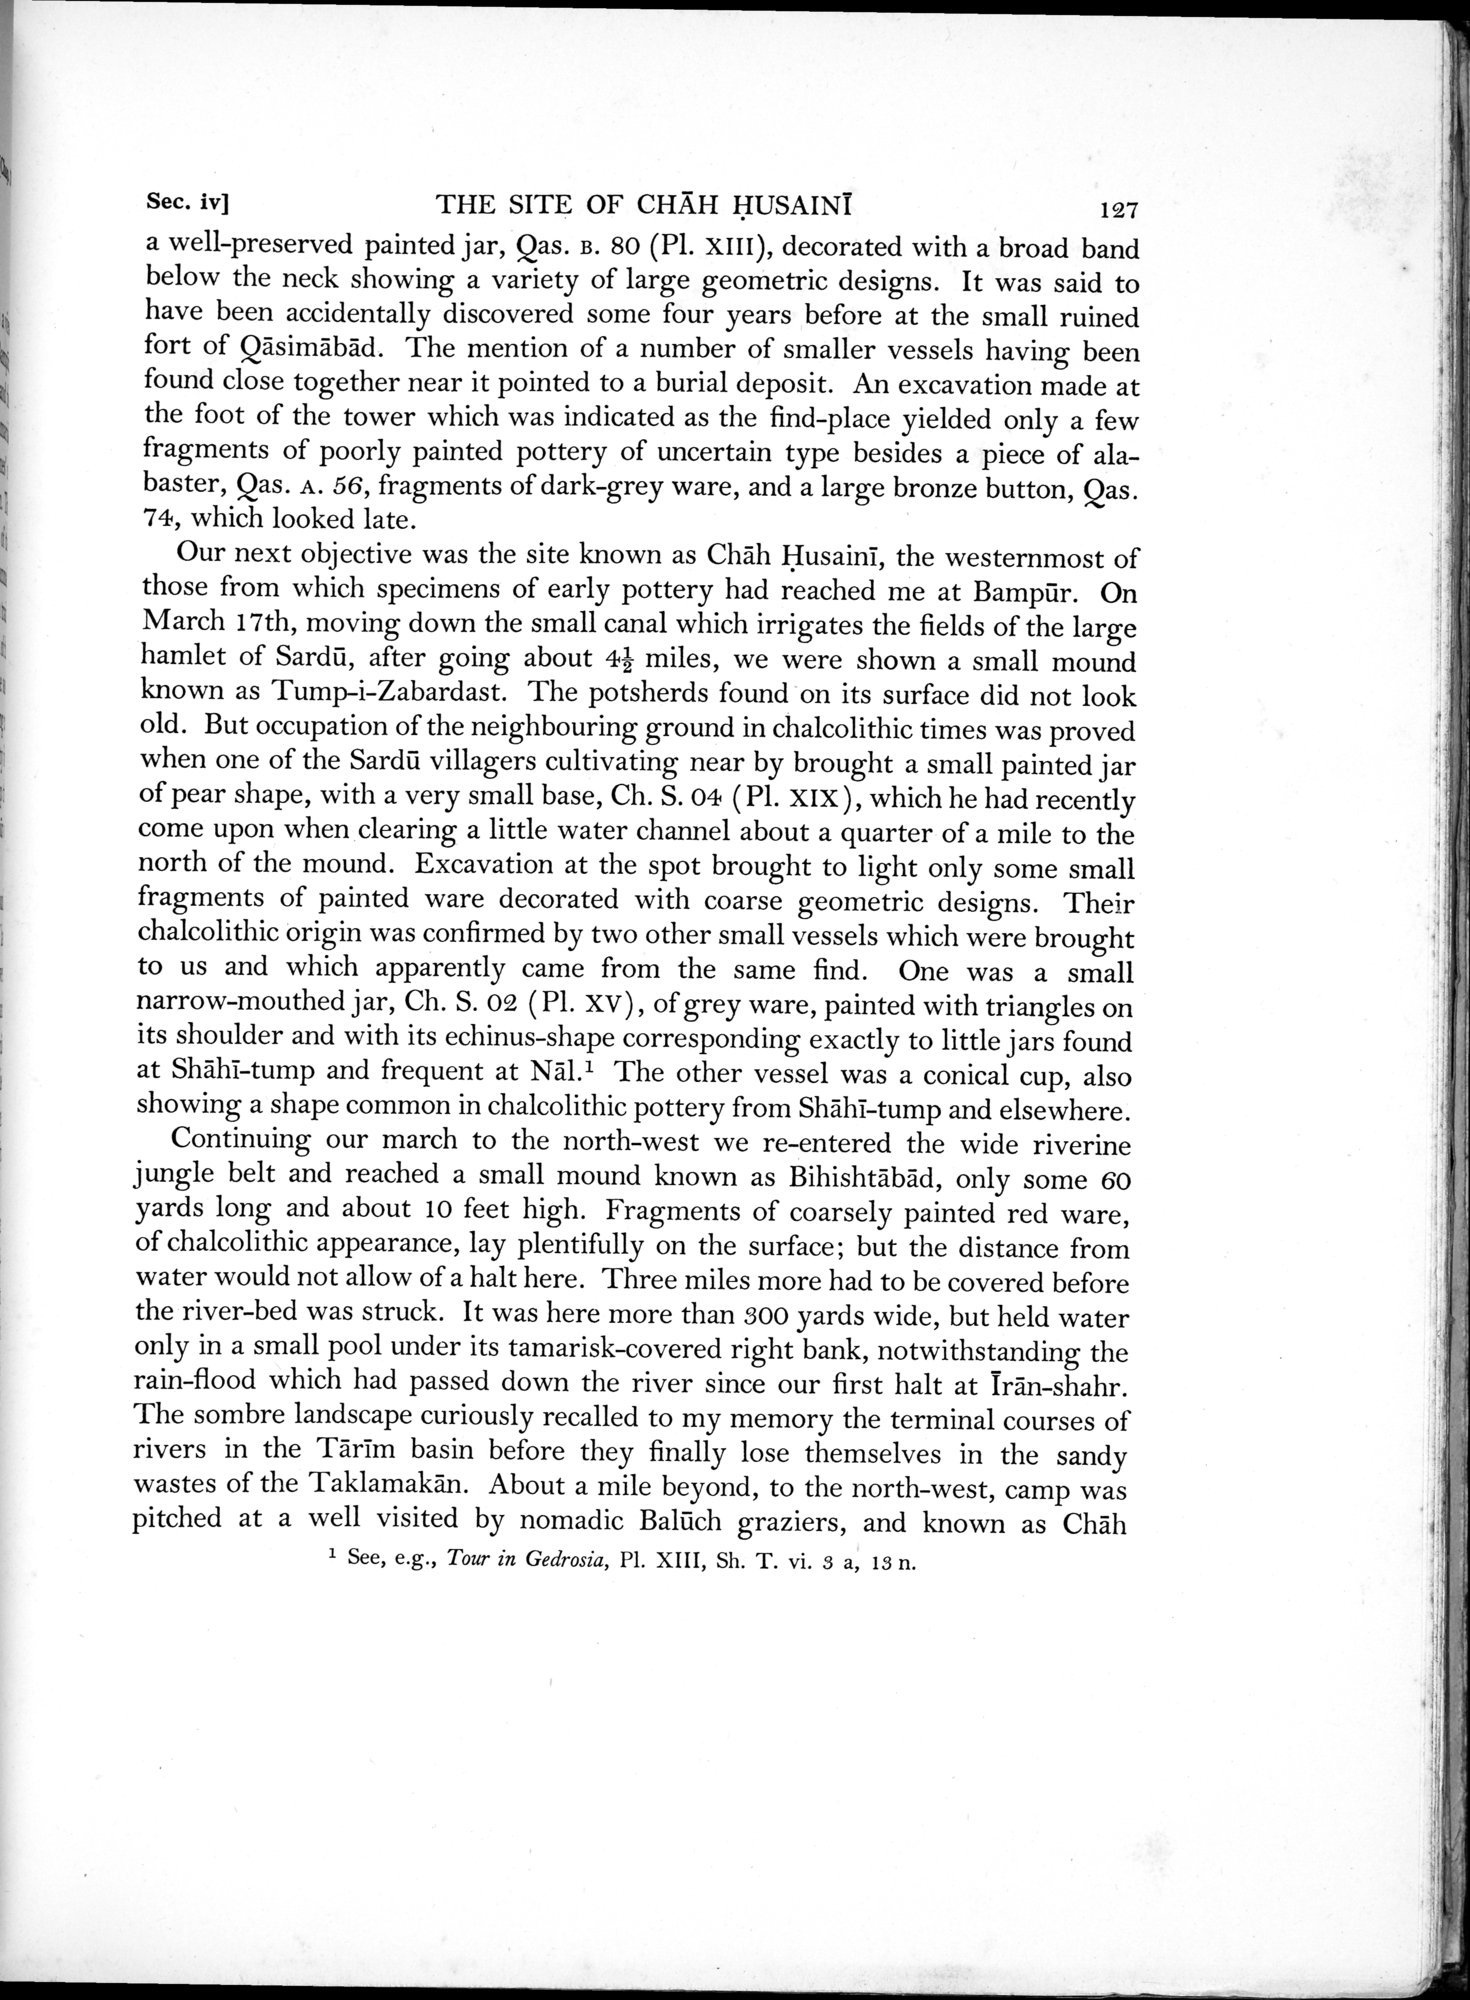 Archaeological Reconnaissances in North-Western India and South-Eastern Īrān : vol.1 / Page 181 (Grayscale High Resolution Image)